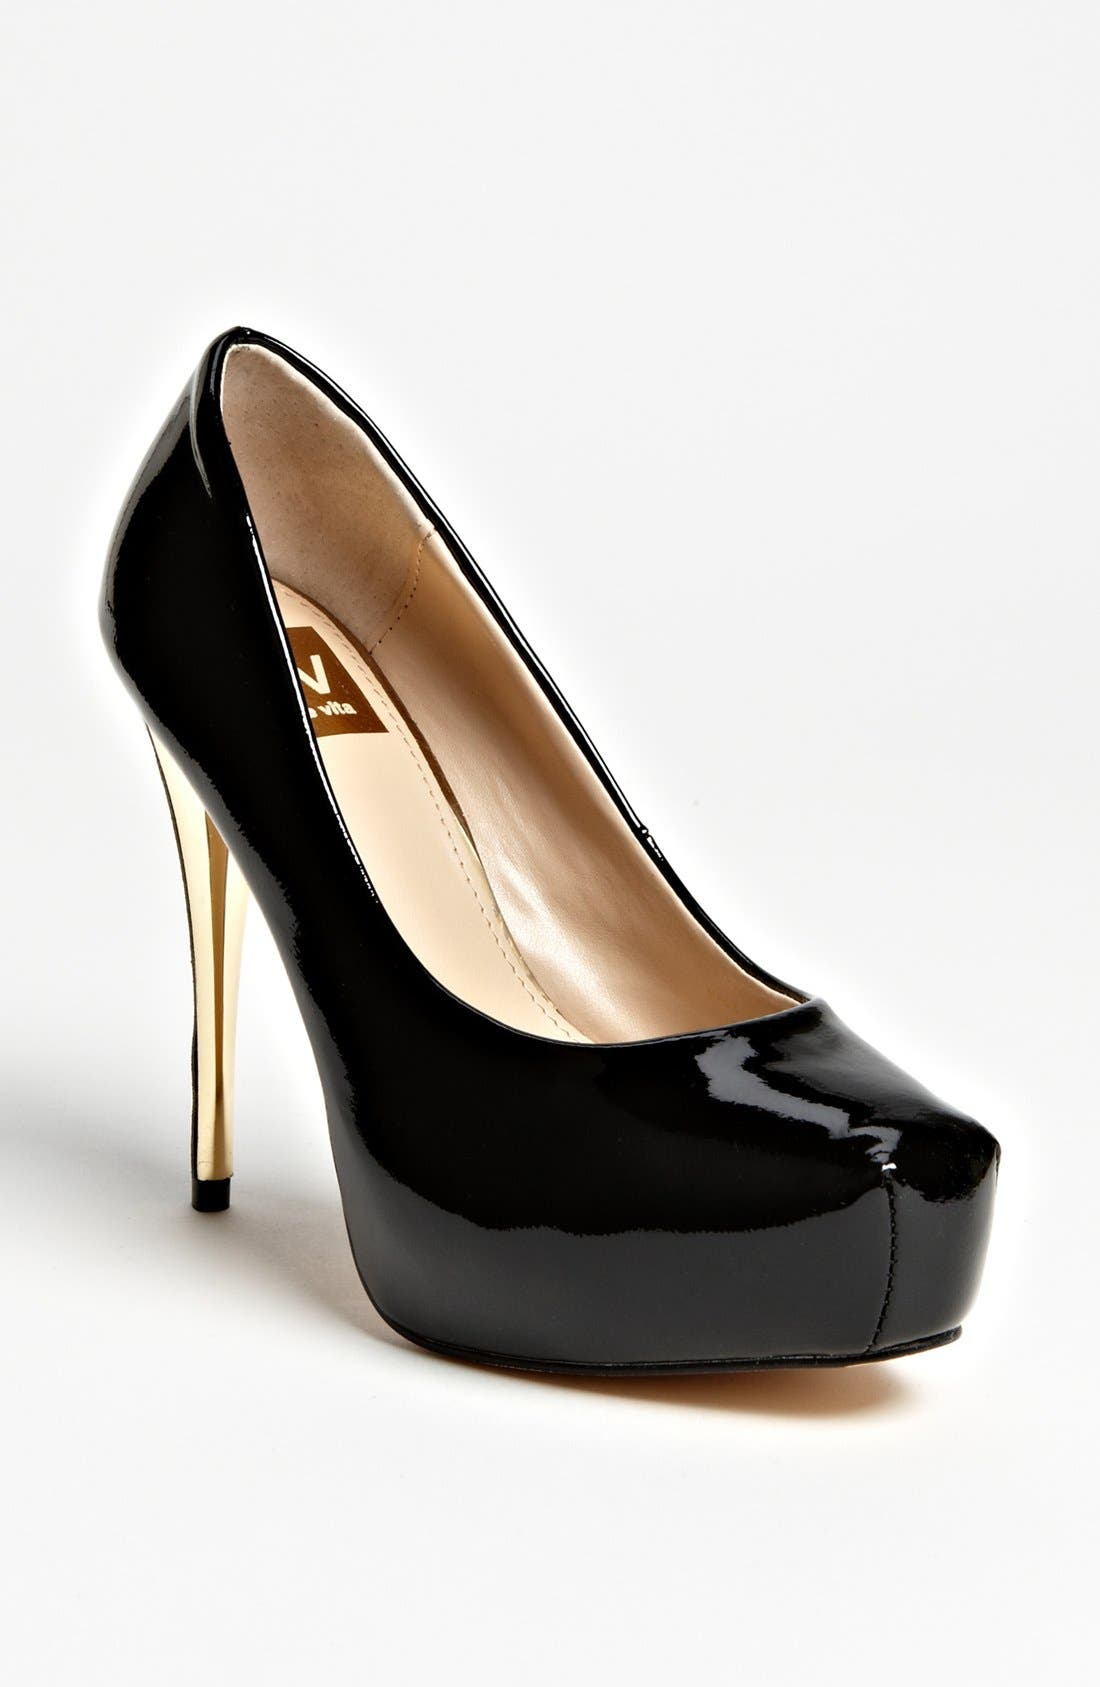 Main Image - DV by Dolce Vita 'Beyla' Pump